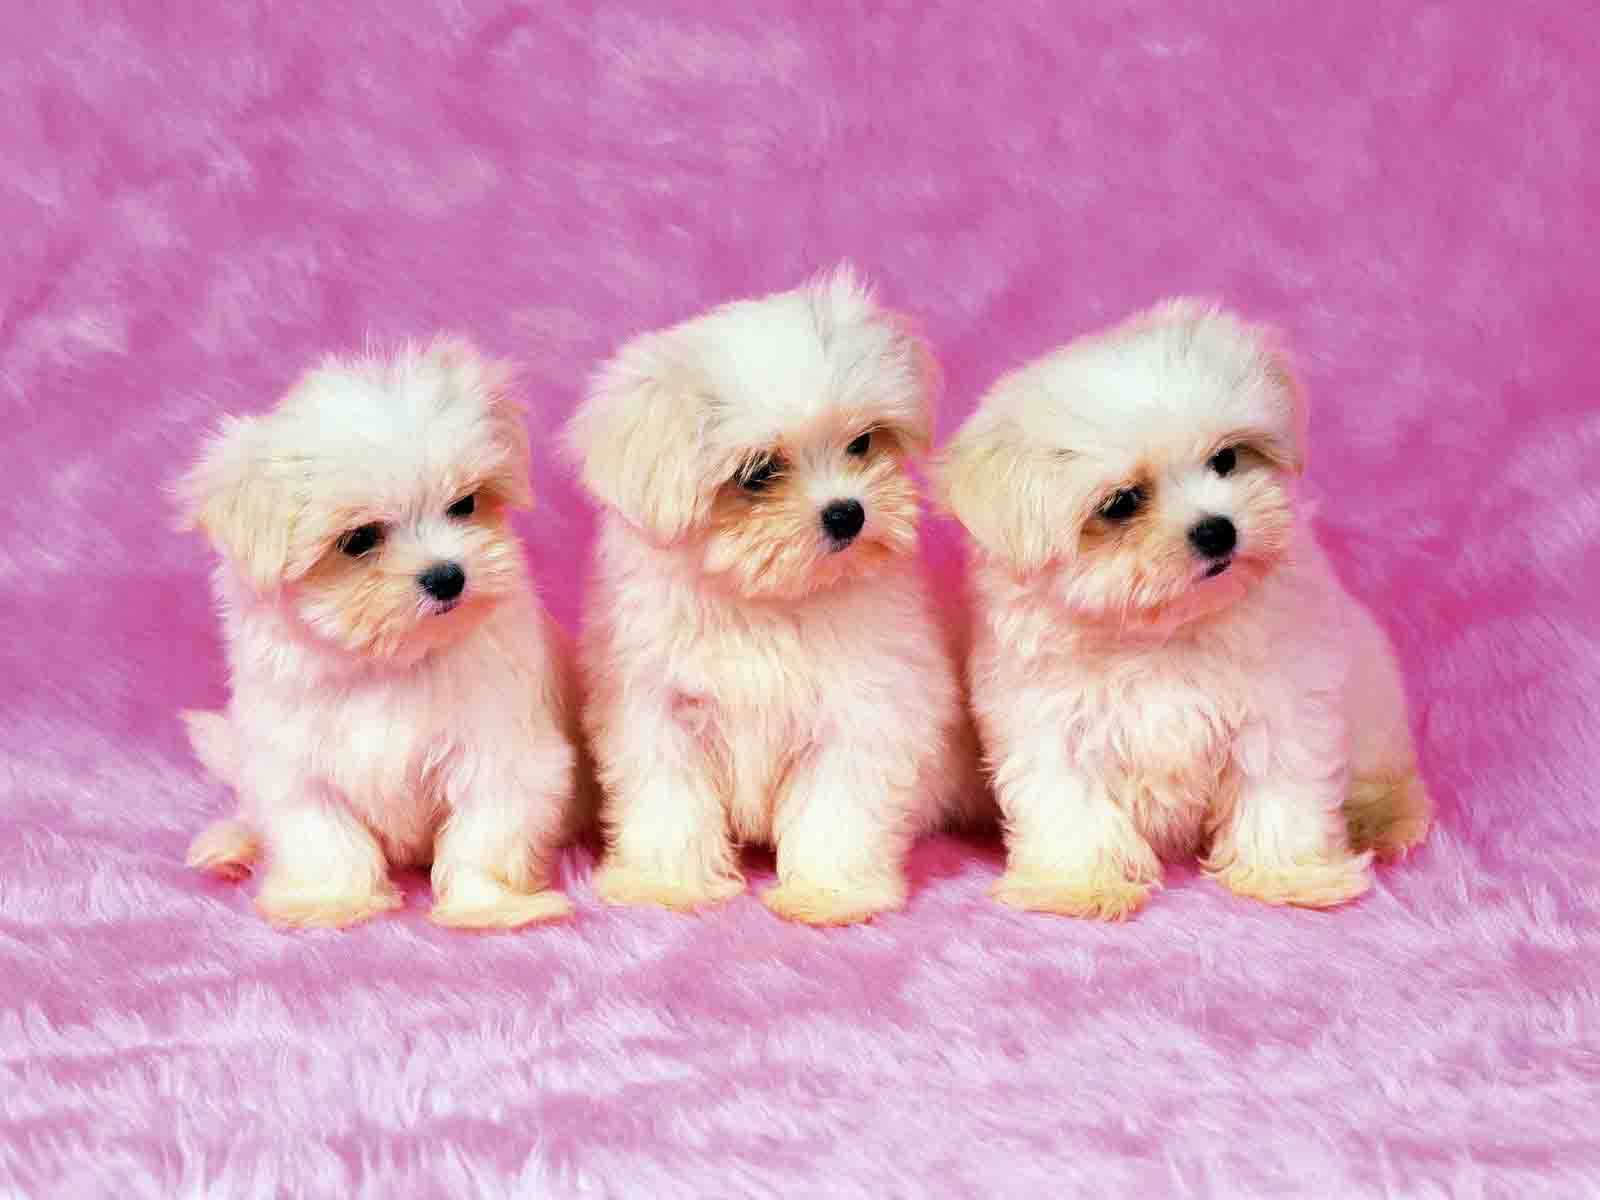 HD WALLPAPERS: CUTE PUPPY HD WALLPAPERS